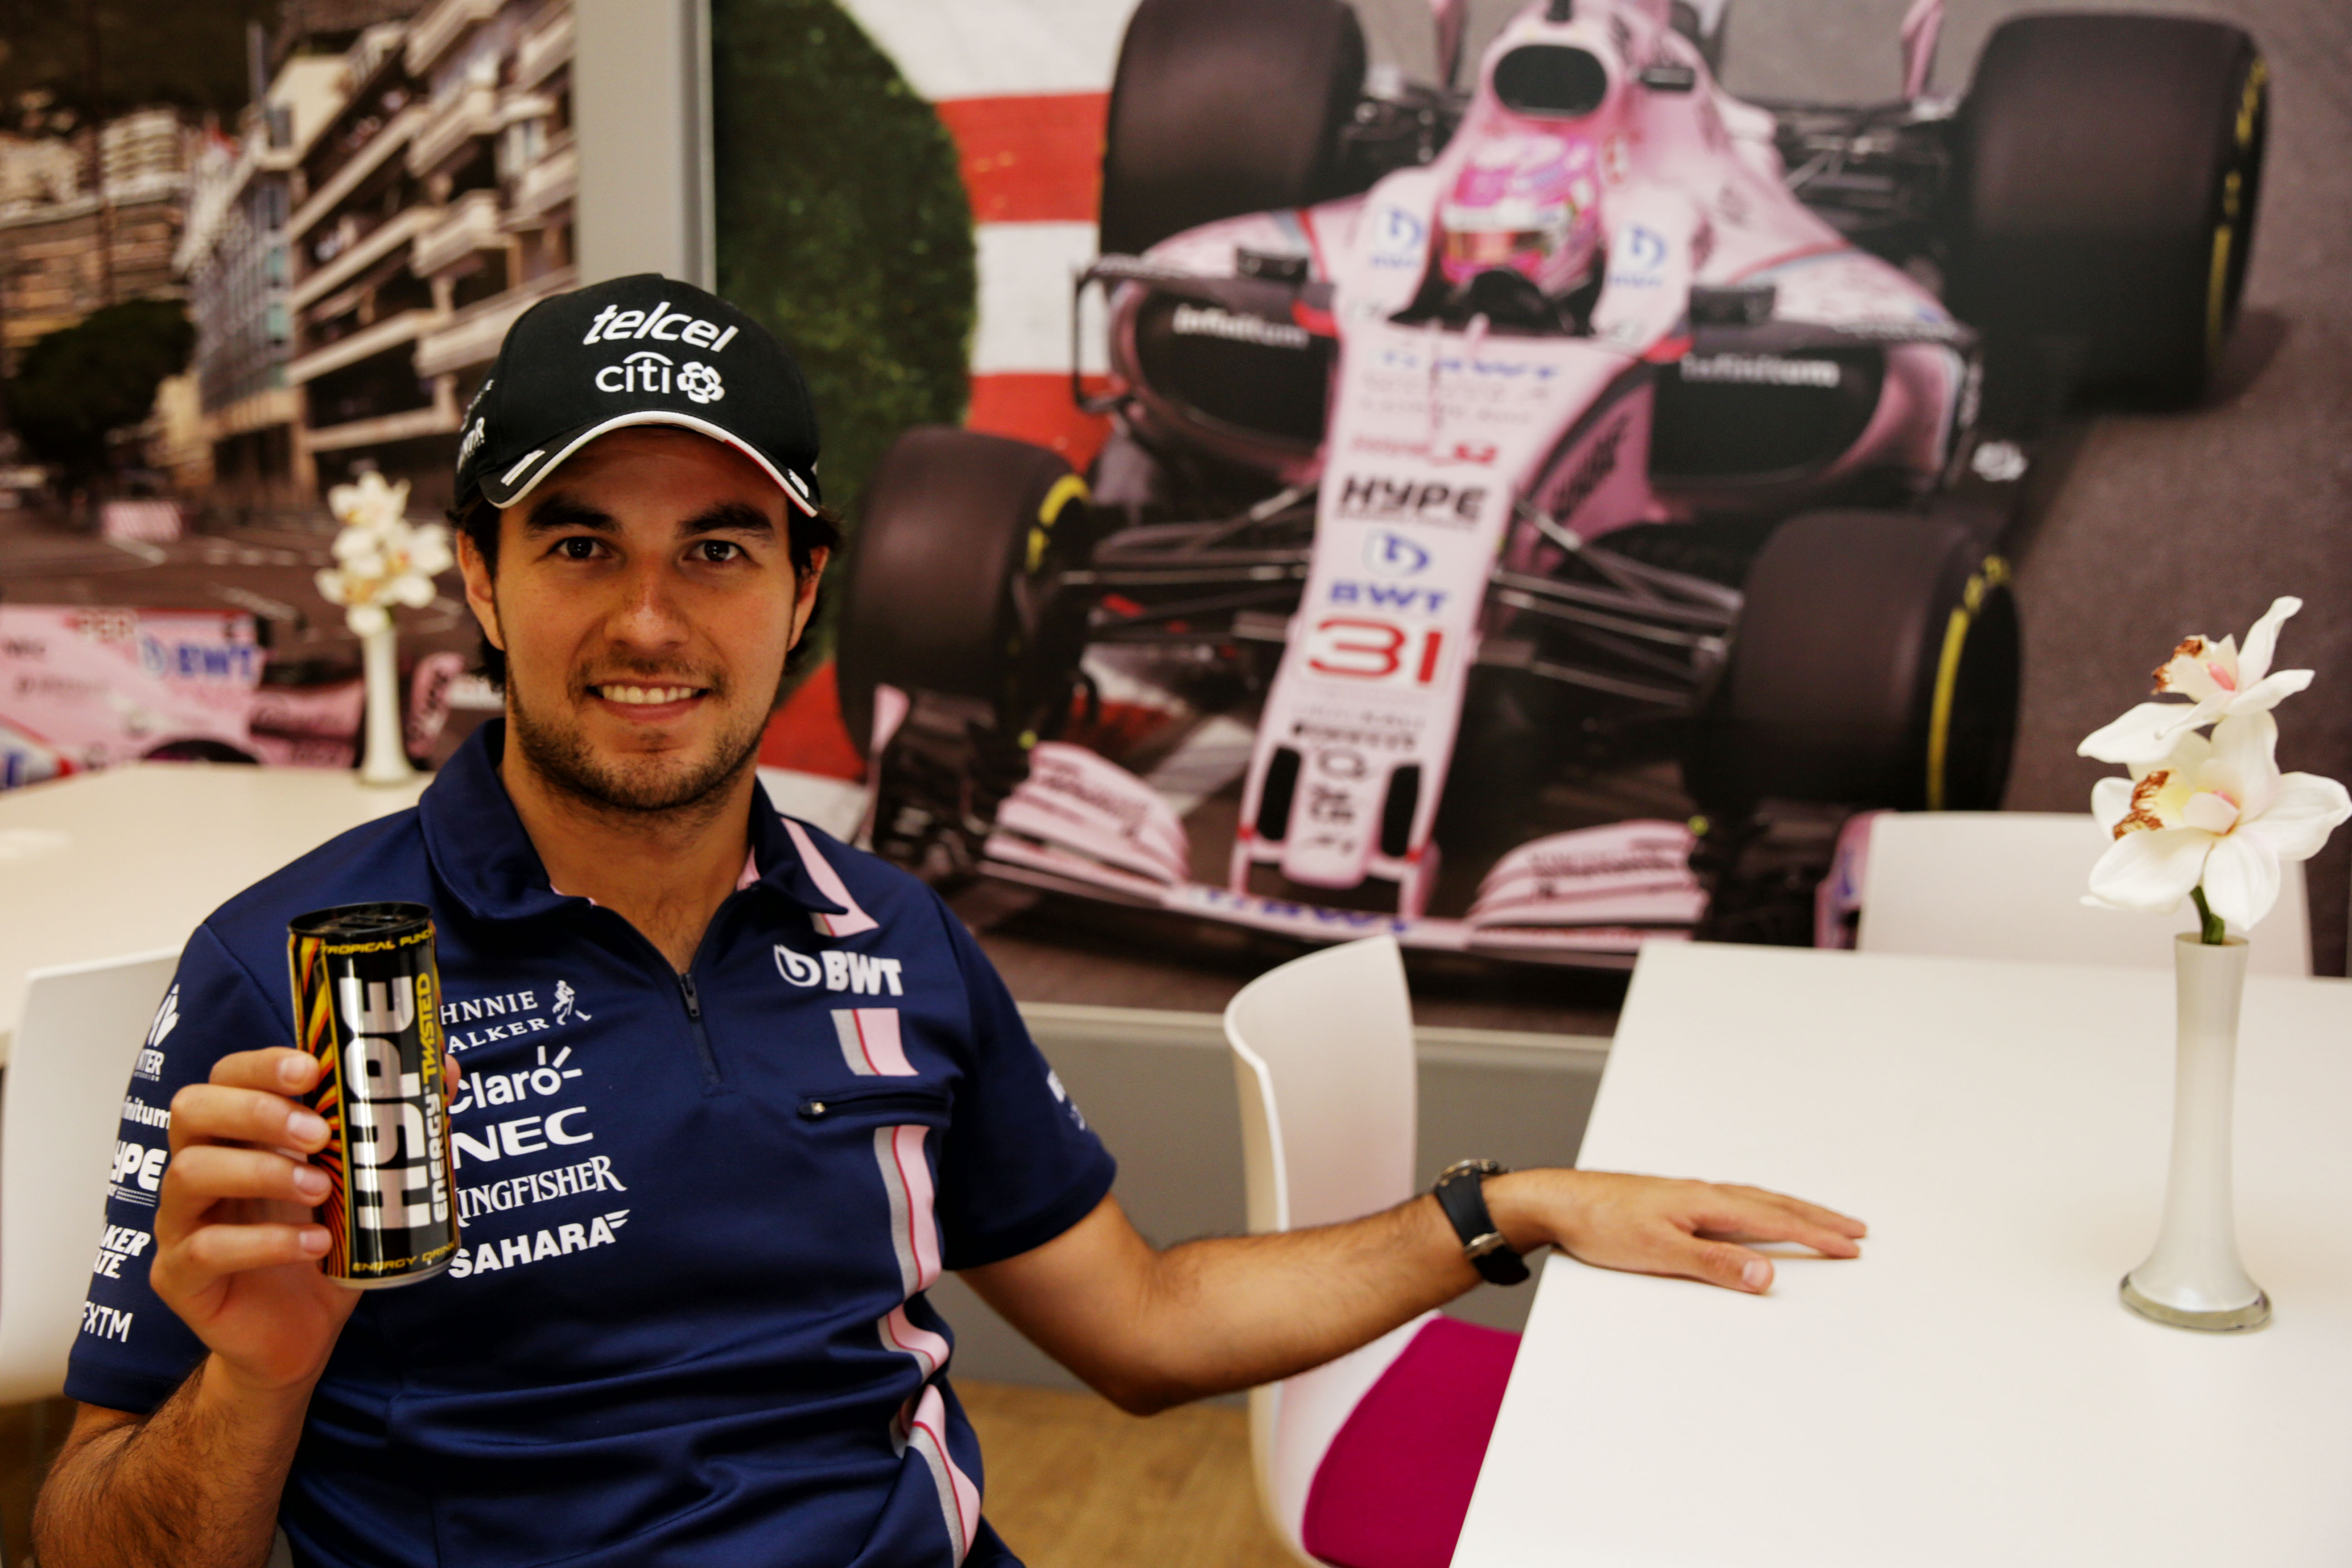 Hype Energy Twisted Sergio Perez